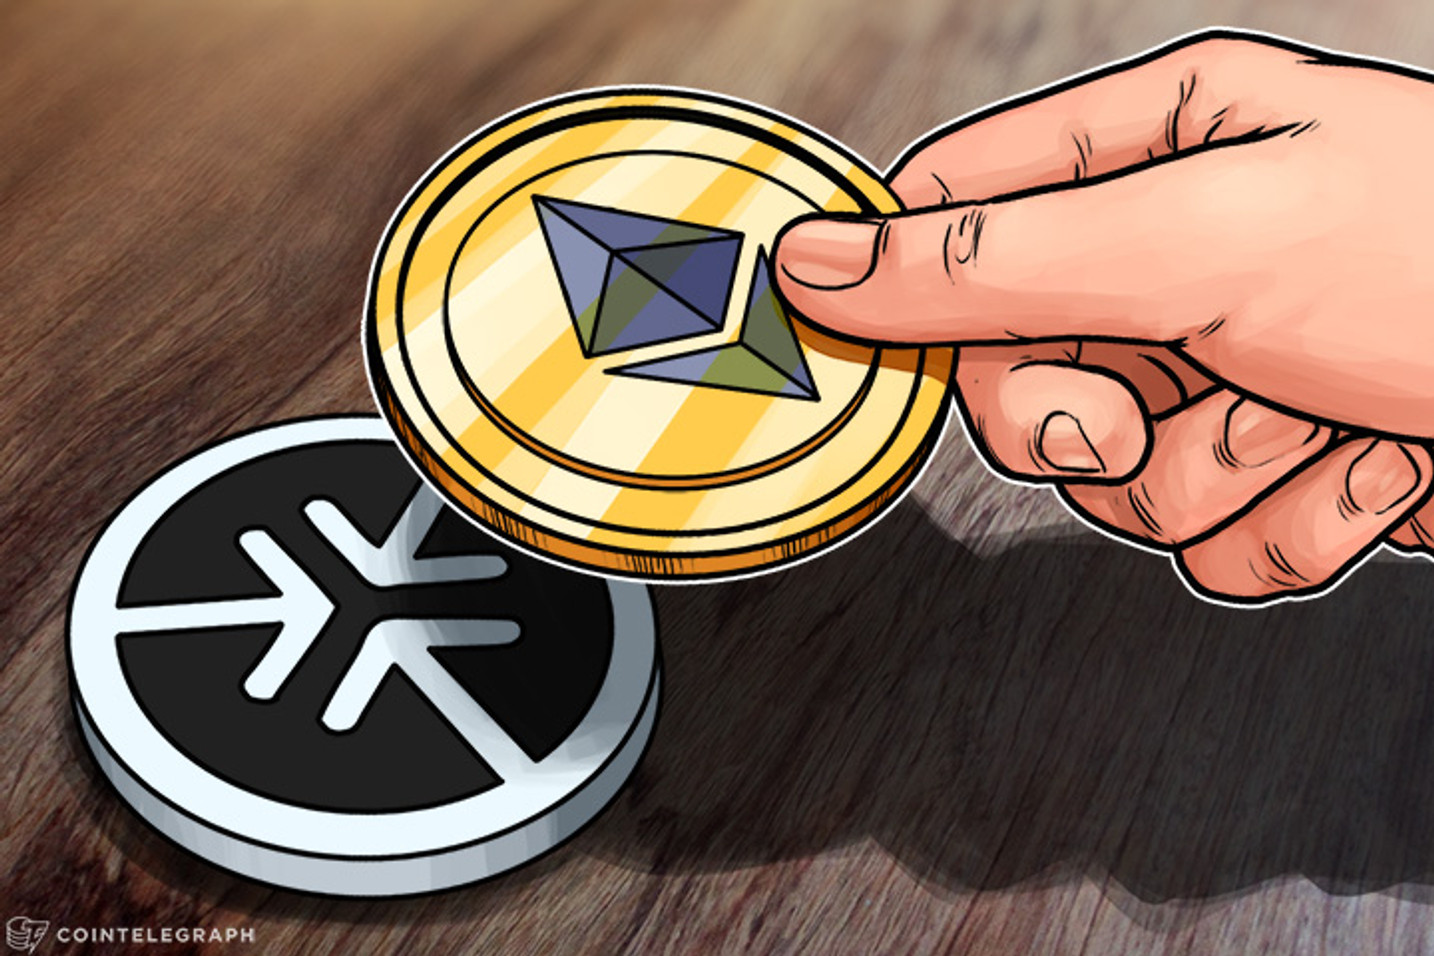 Serious Fundraising: As Ethereum Wobbles, ICOs Need A Firm Hand